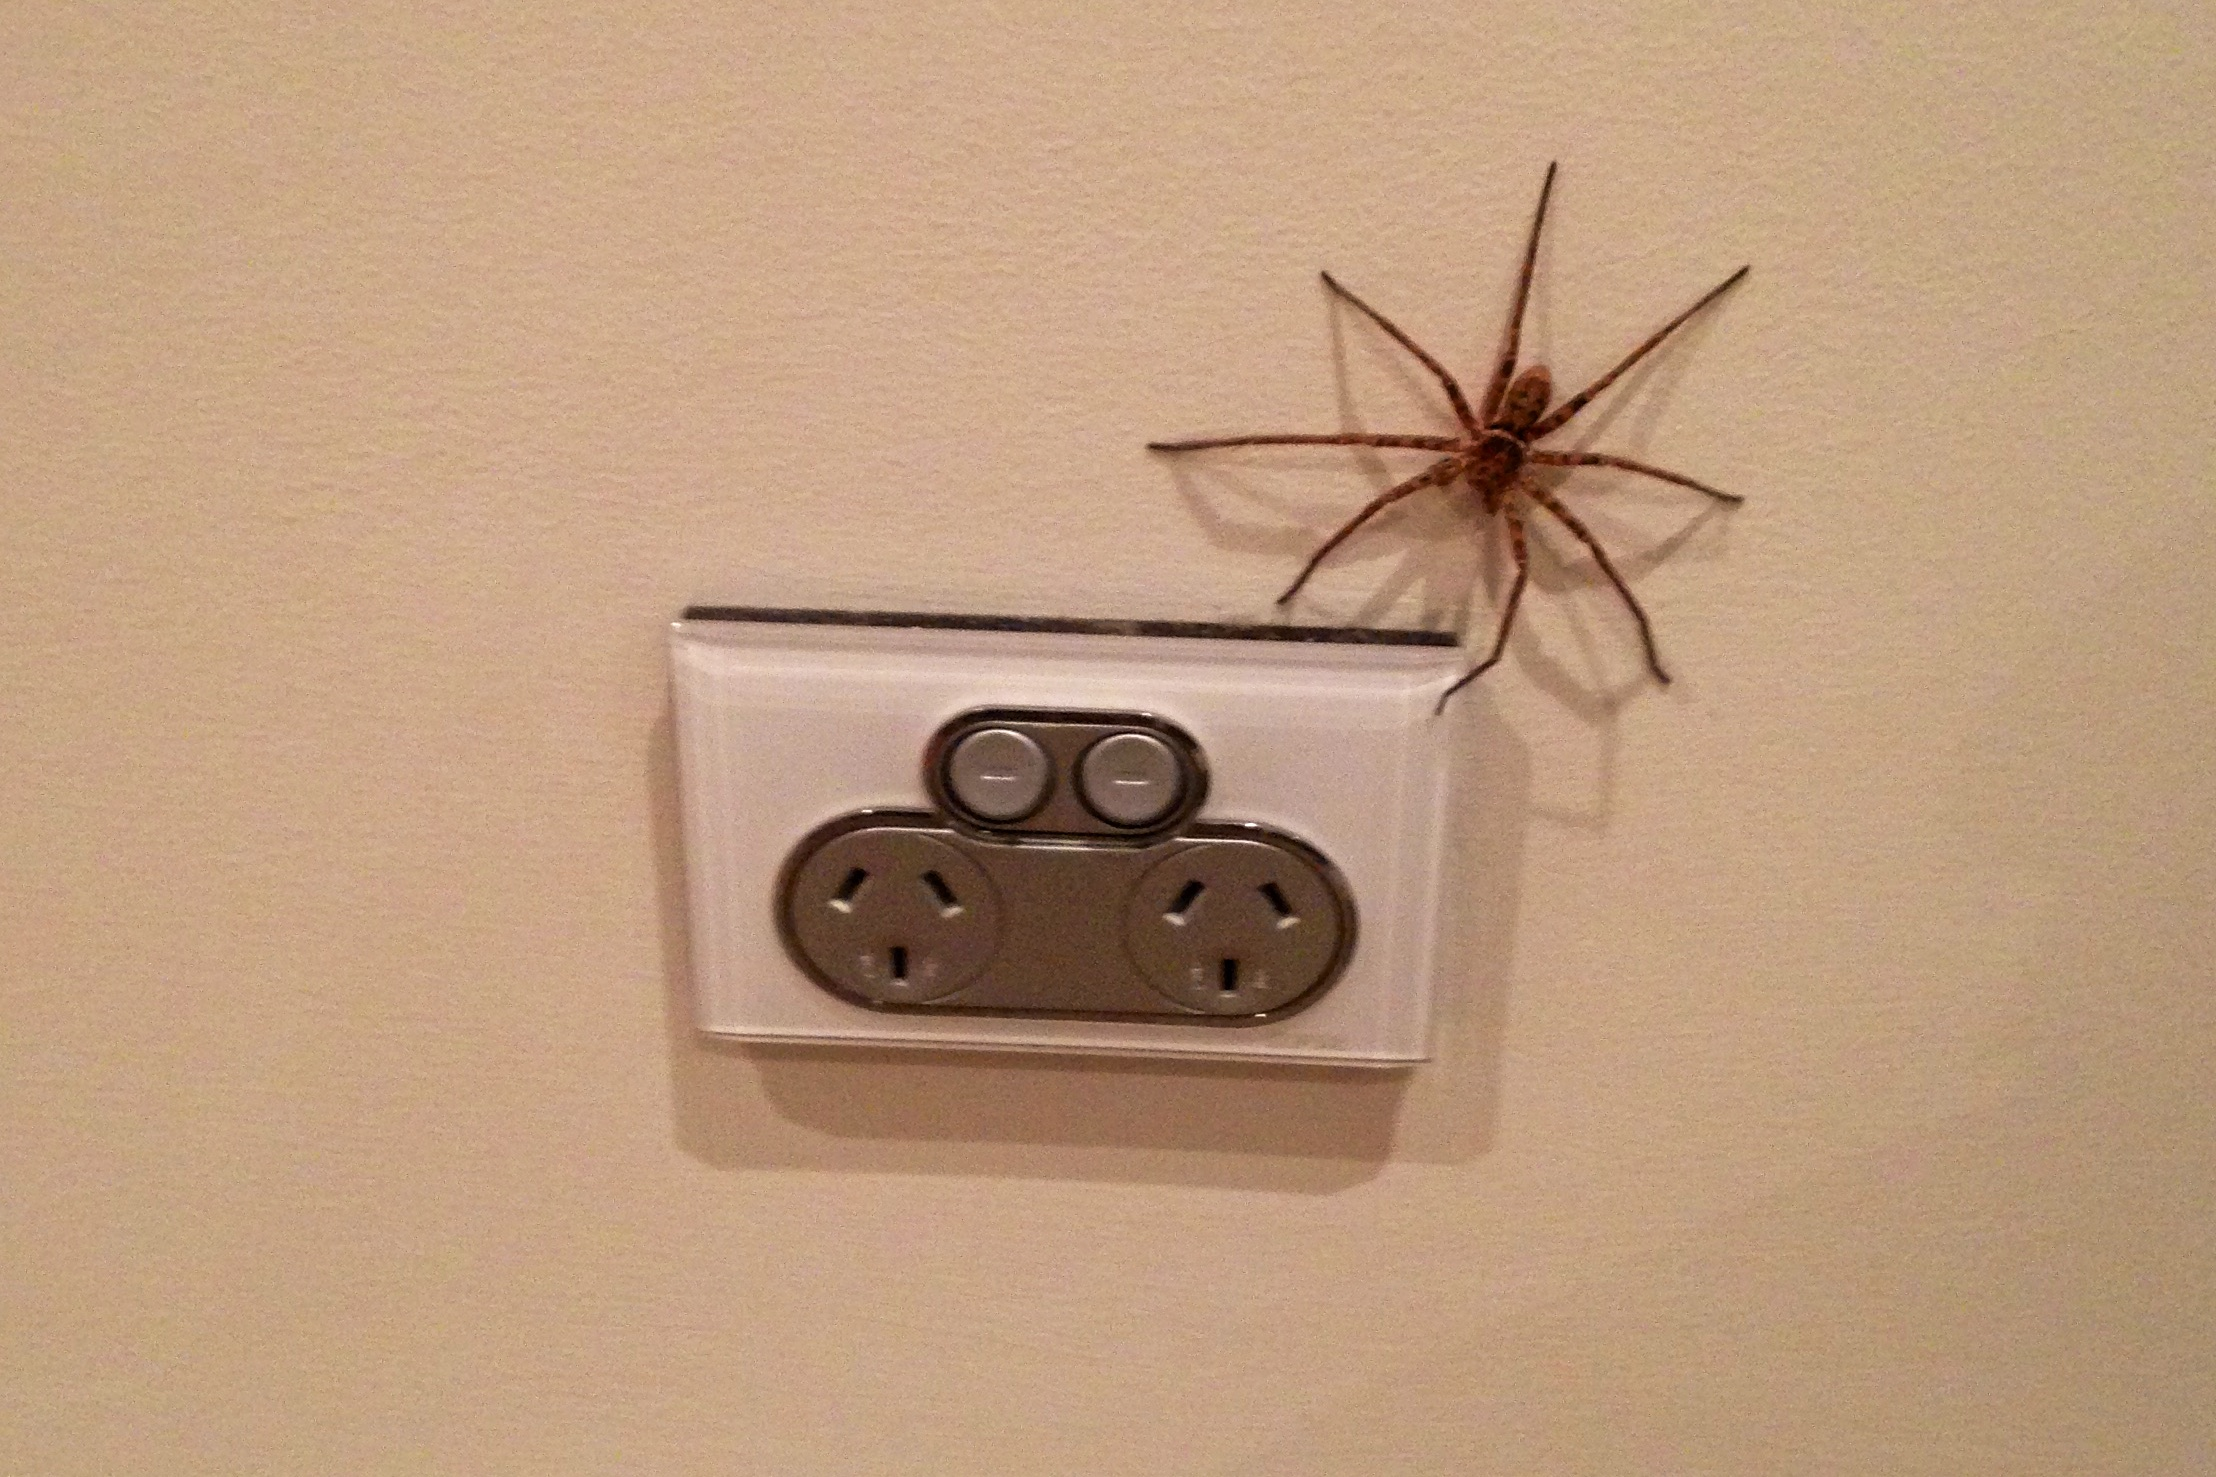 The spiders in Australia are the creatures of nightmares!  Thankfully hubby smushed this monster before he ate us all!